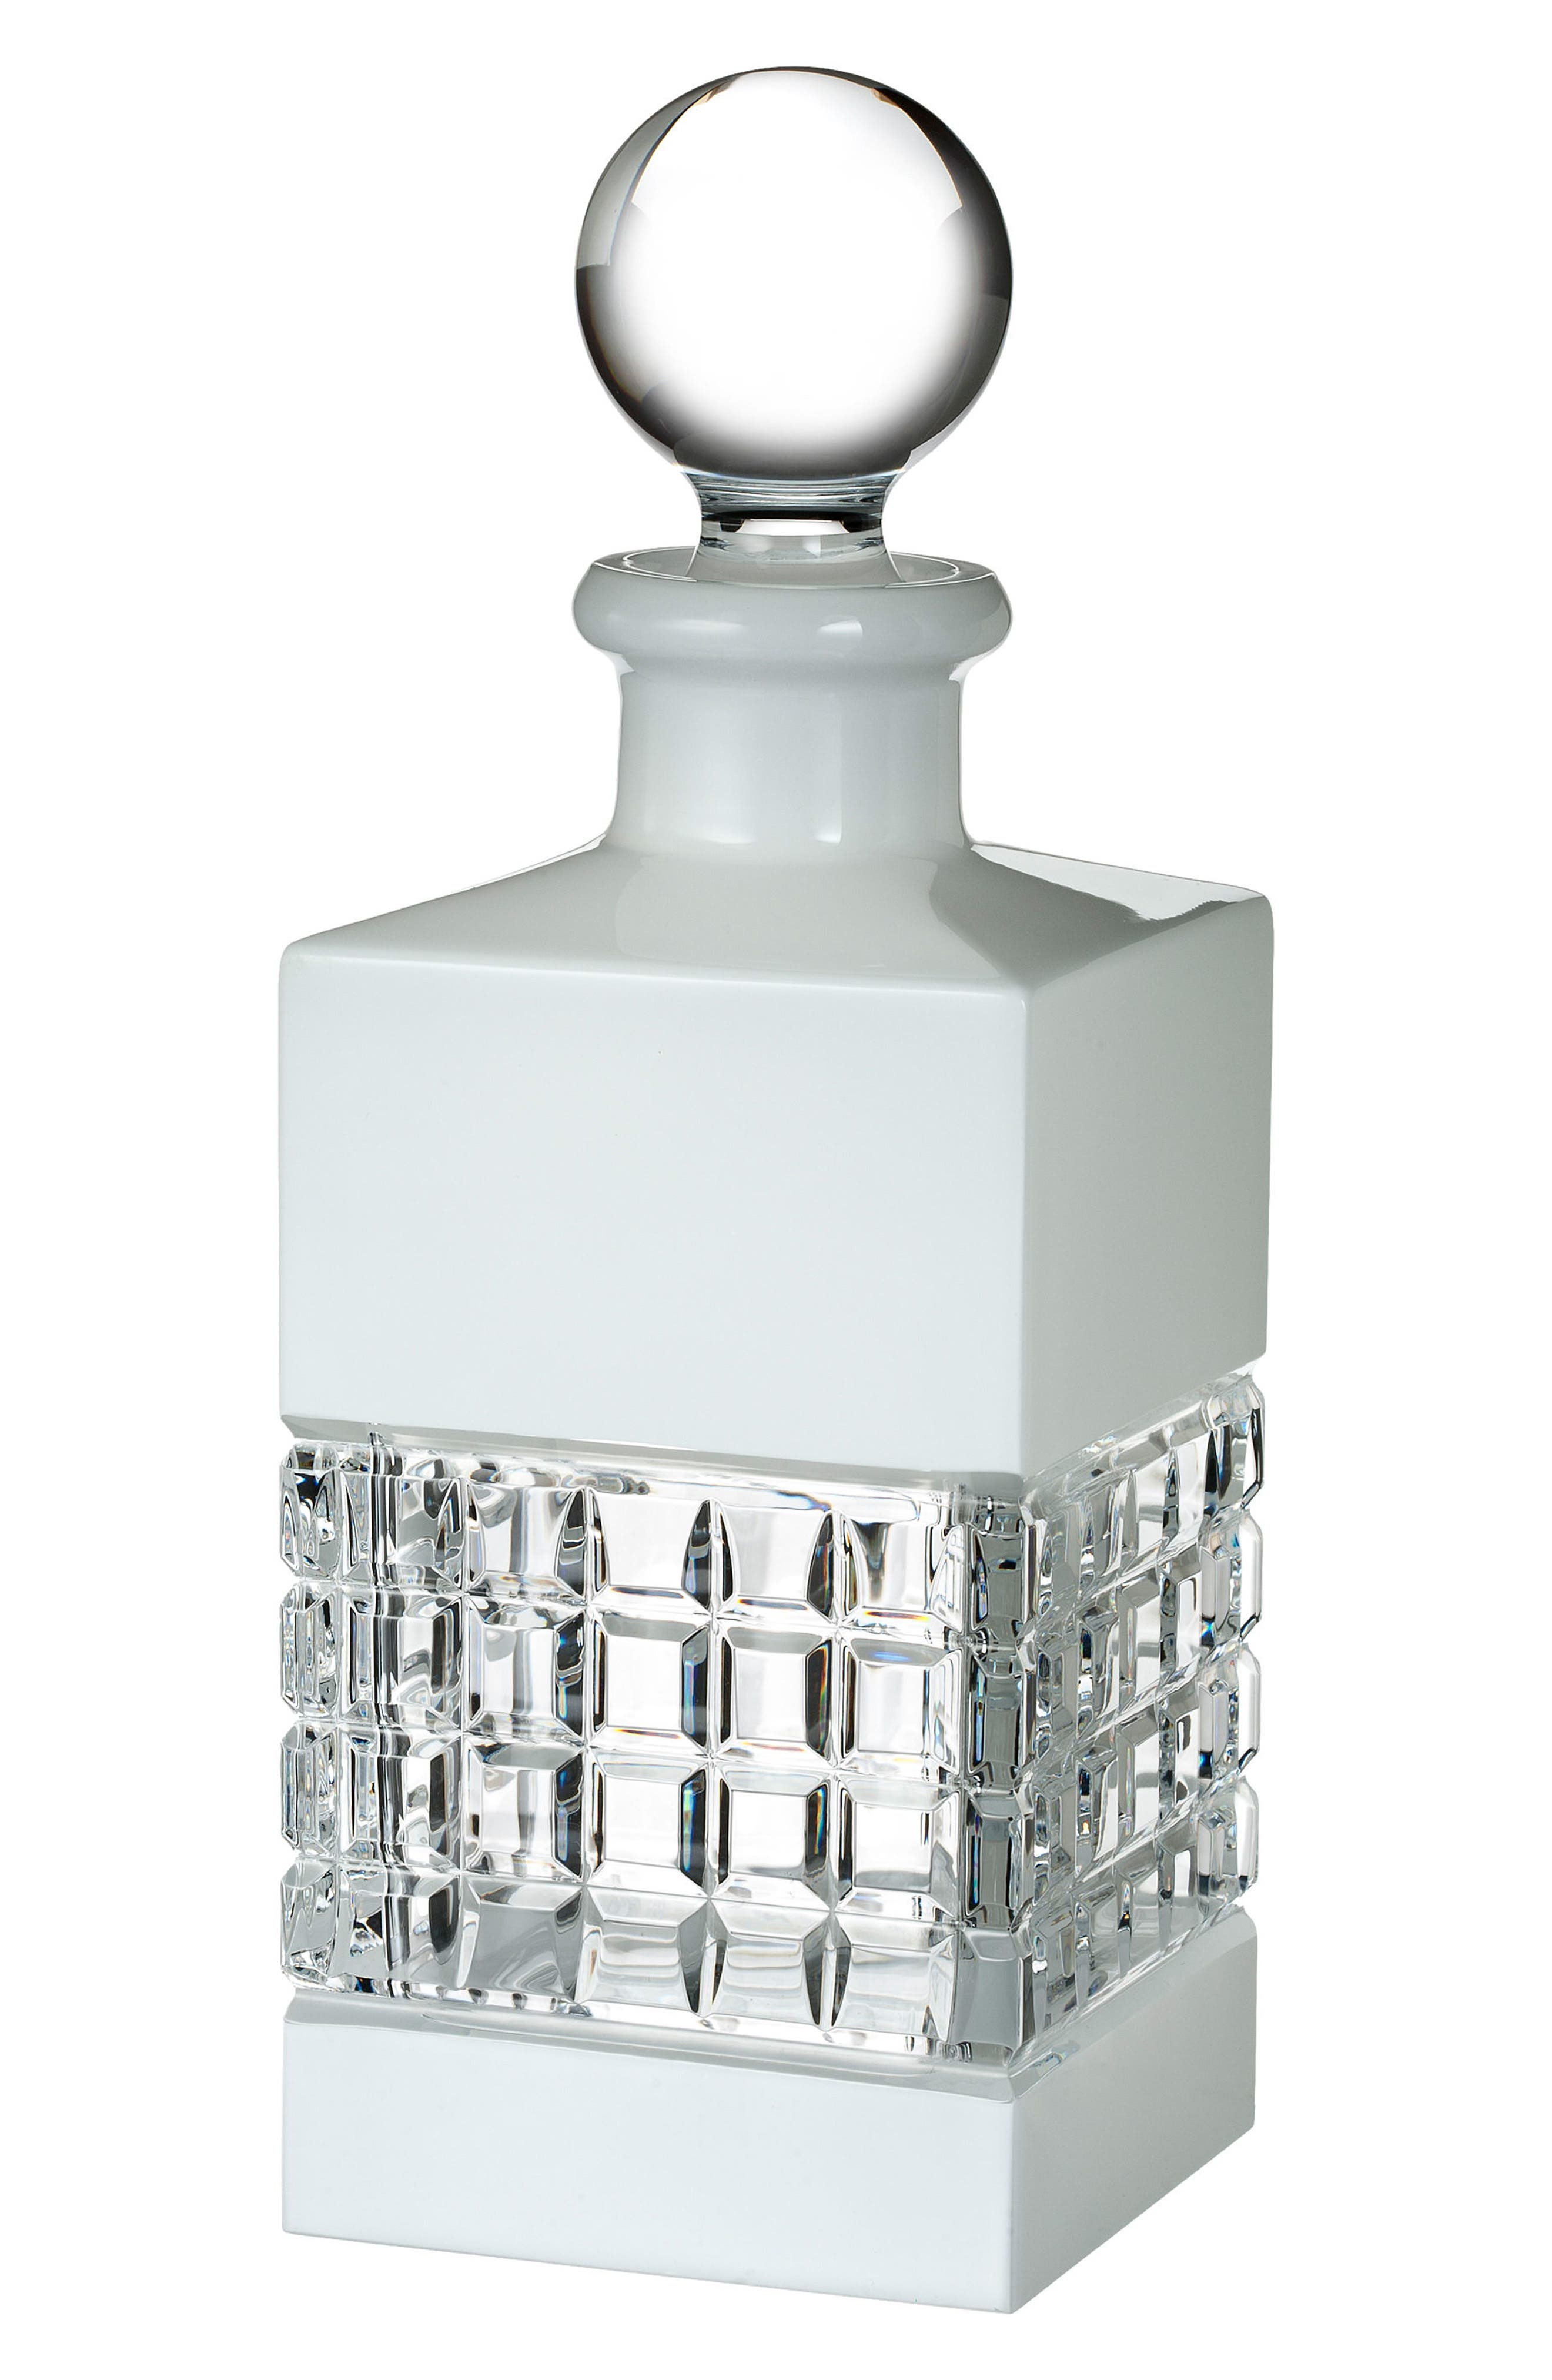 Main Image - Waterford London White Lead Crystal Decanter